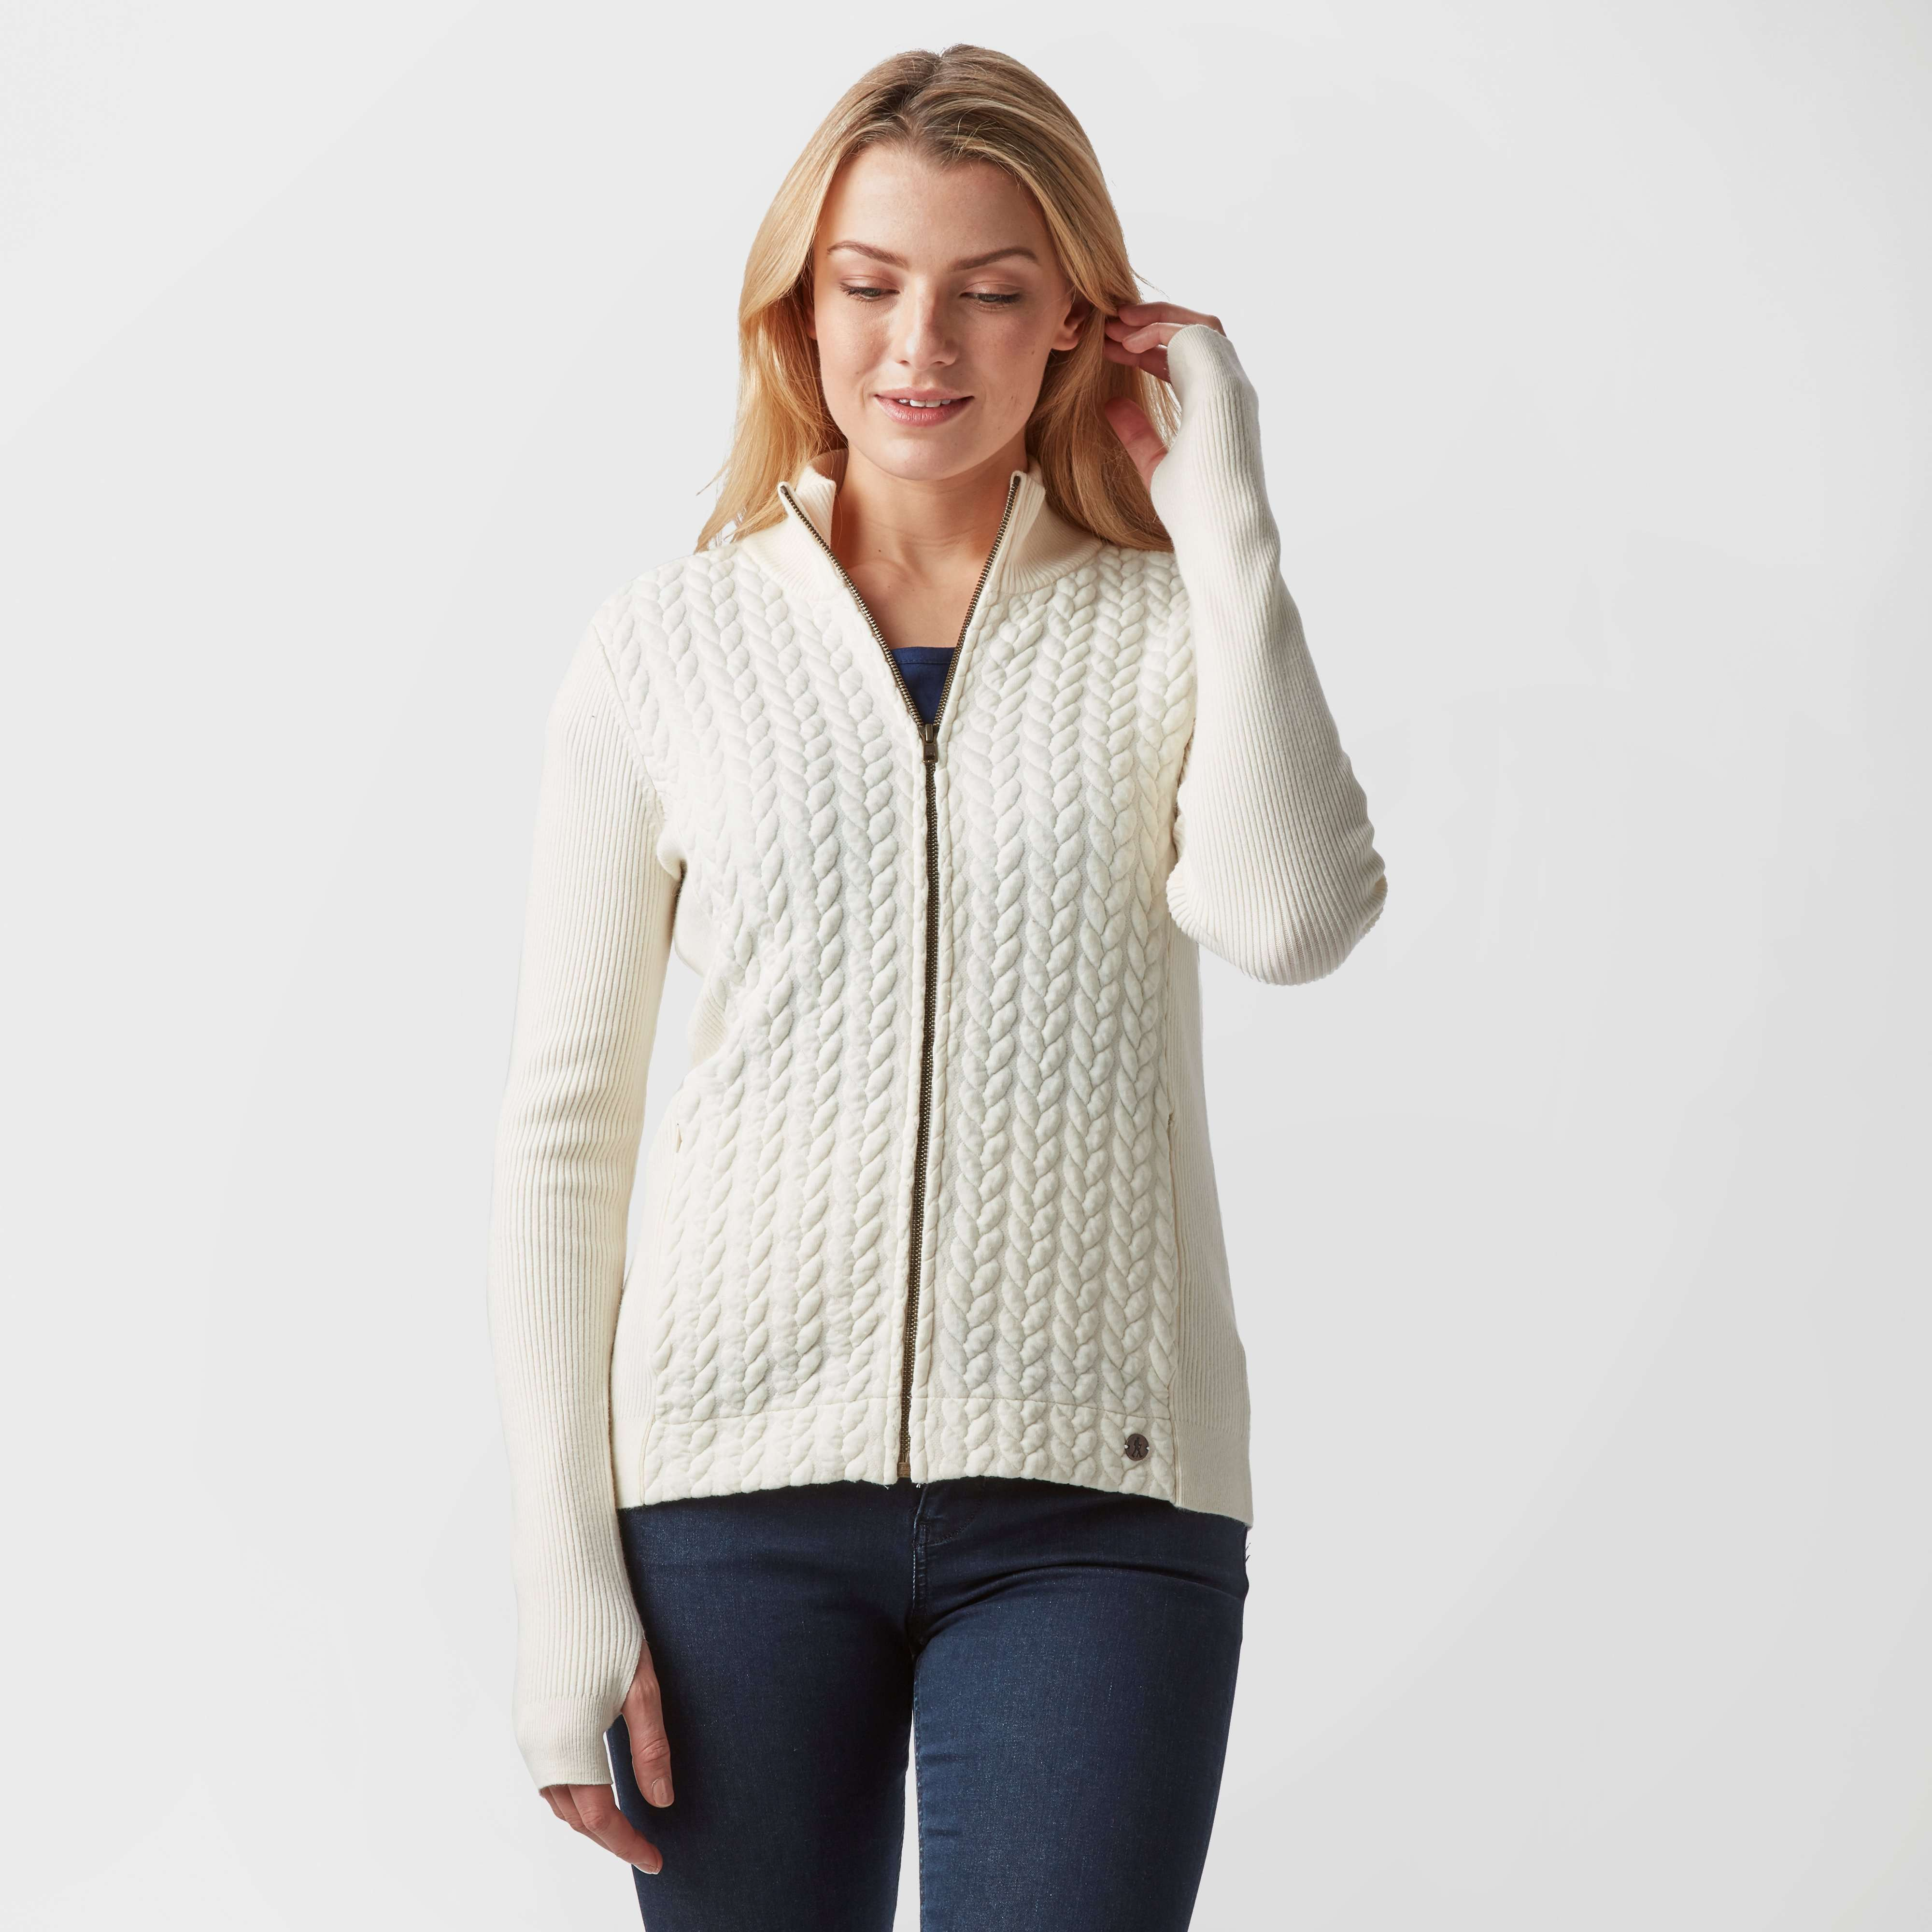 ROYAL ROBBINS Women's Cable Mountain Pullover